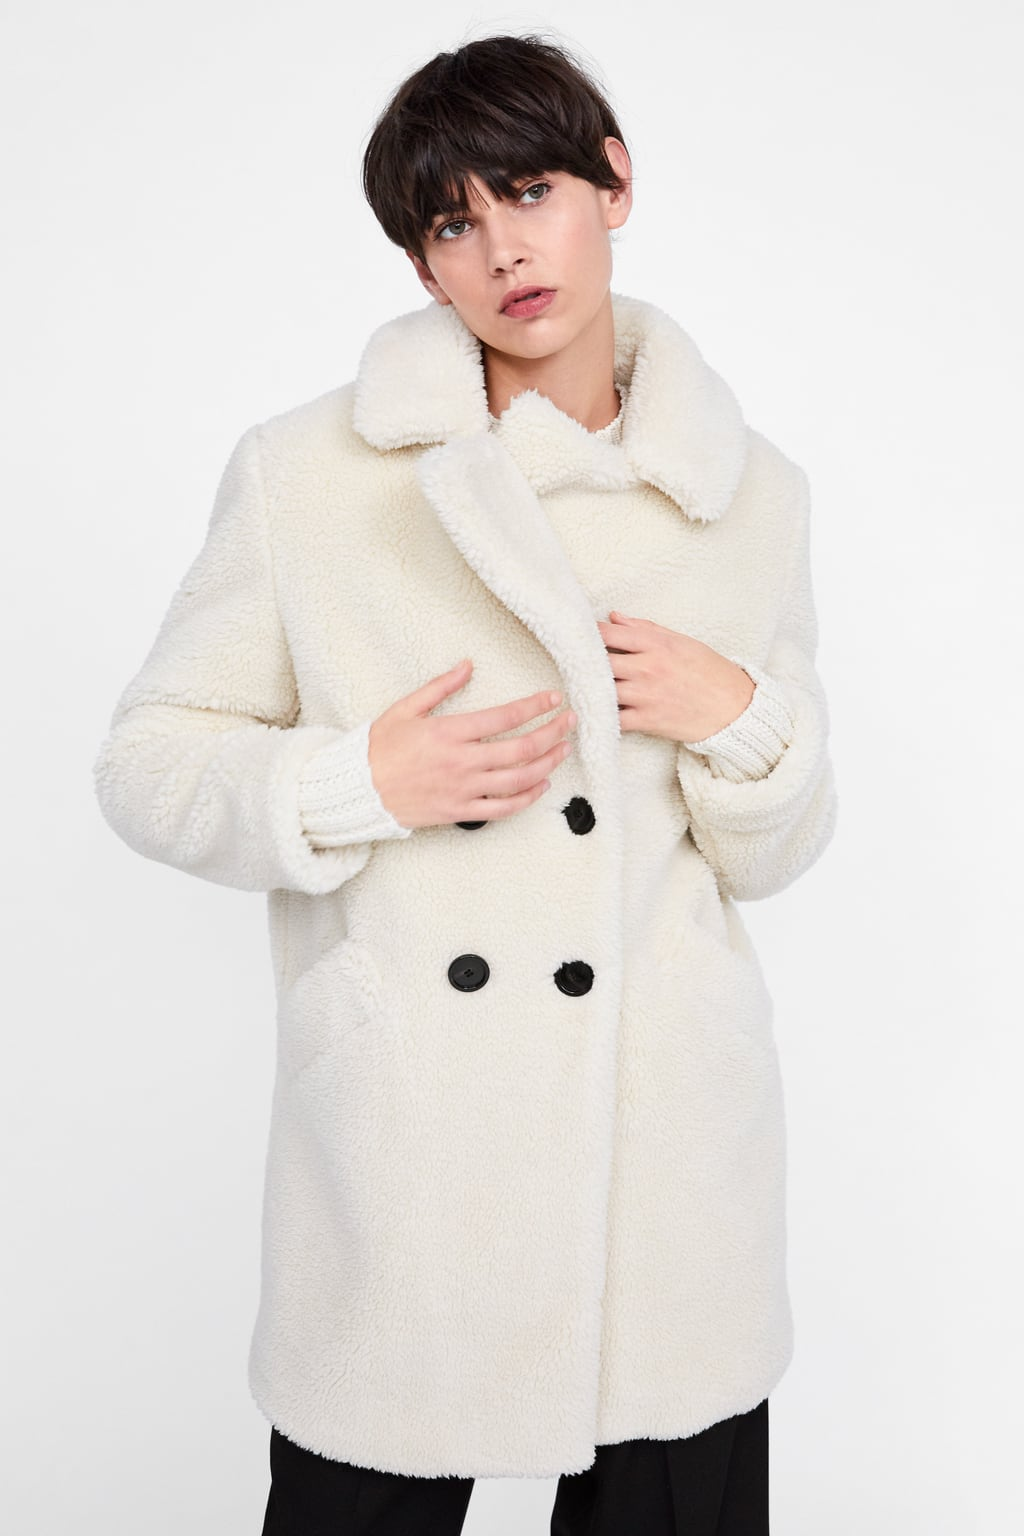 Spain Za fur one piece jacket long lamb coat coat loose and enlarged Korean version warm and thick